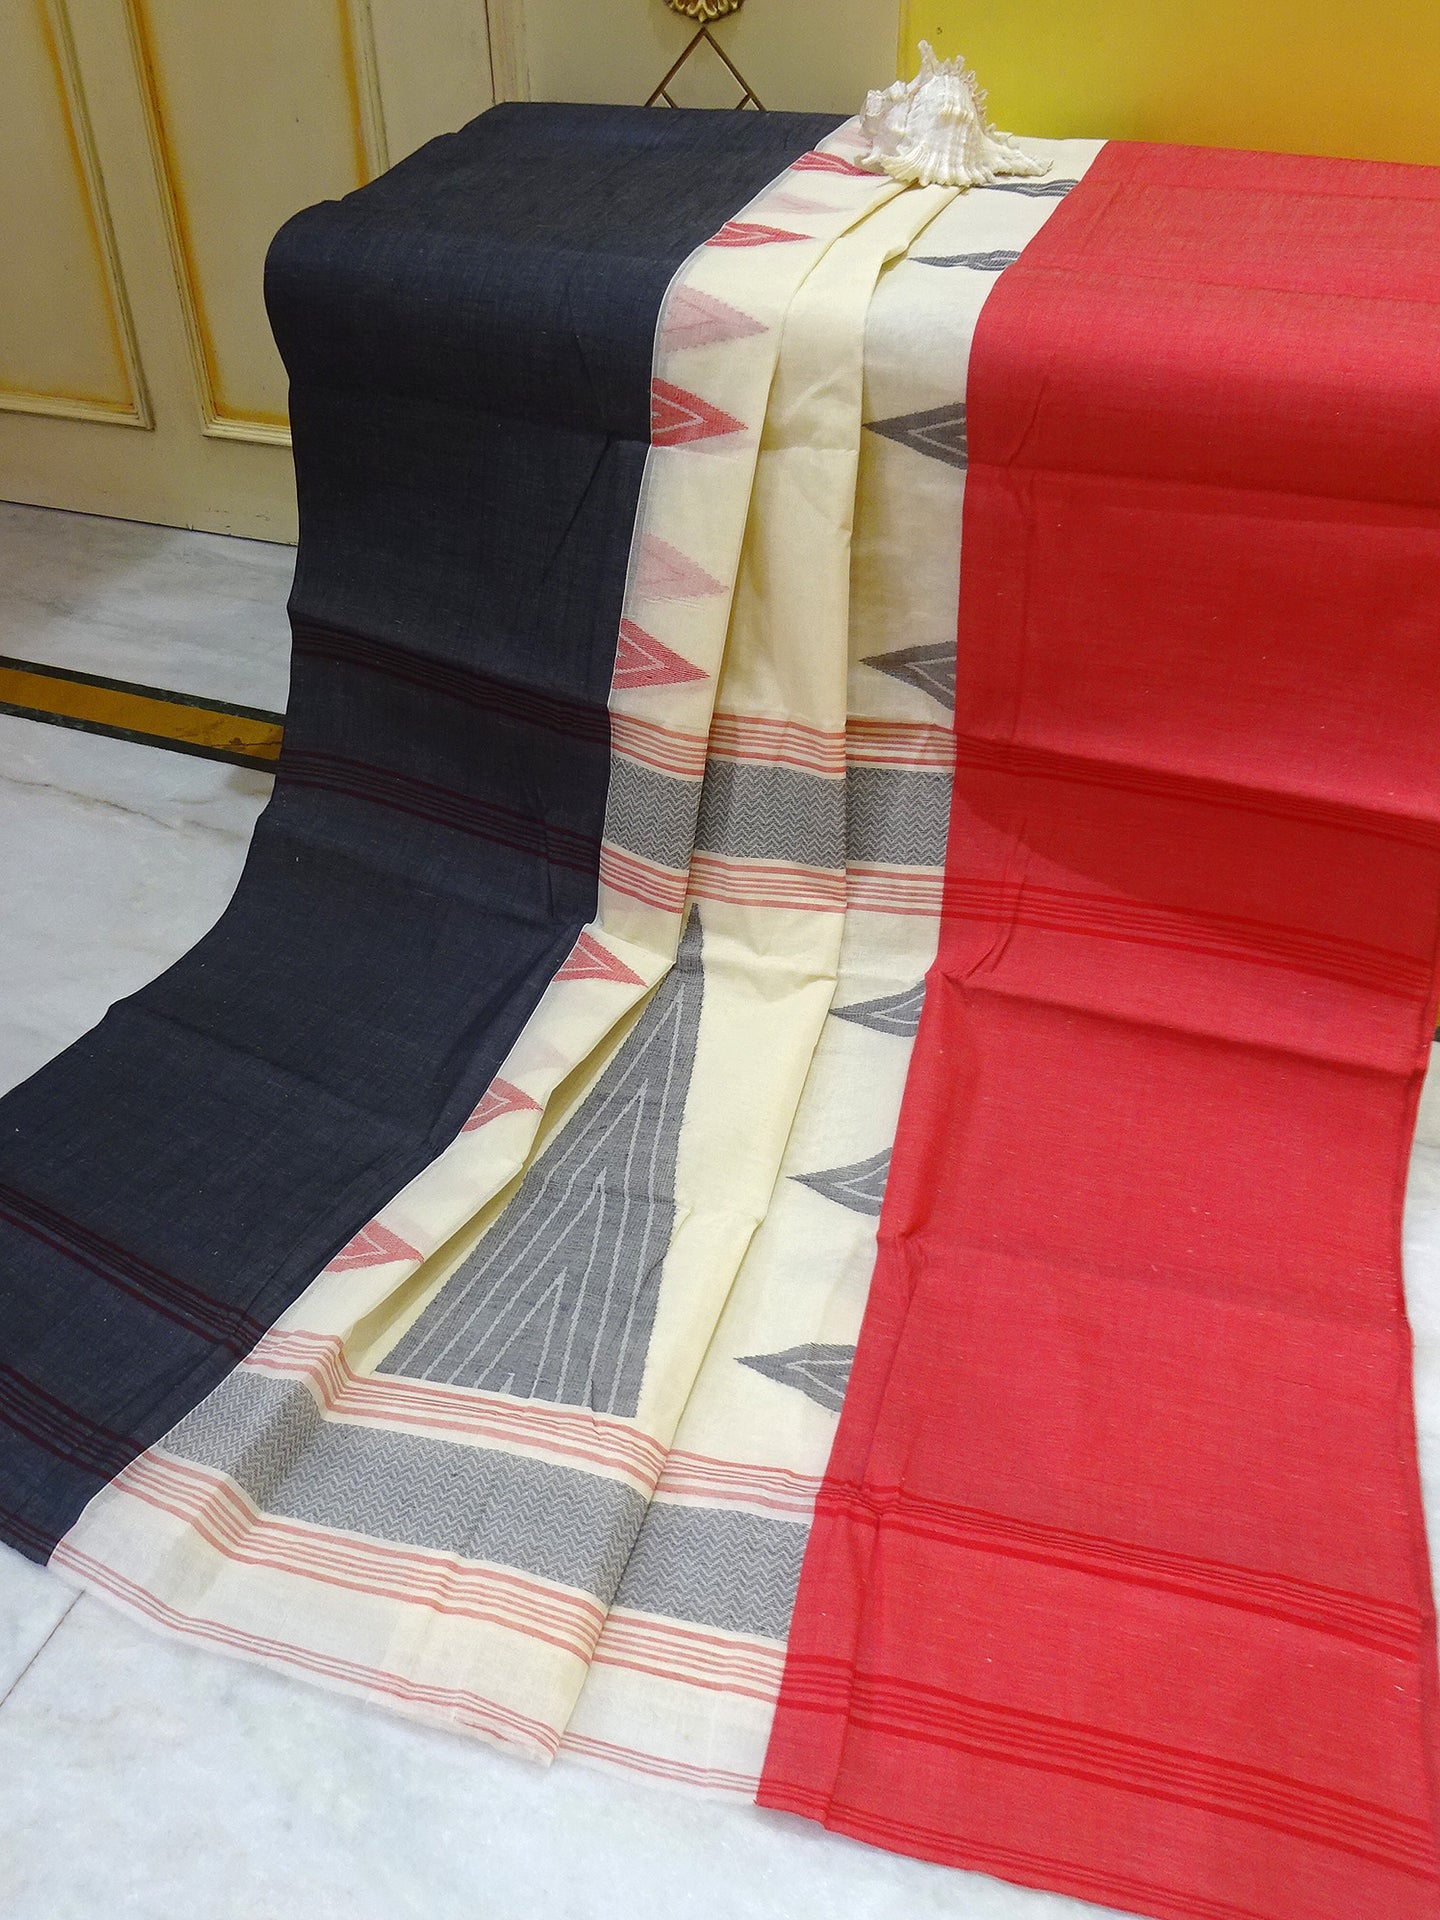 Bengal Handloom Cotton Hazar Buti Saree in Tomato Red and Navy Blue